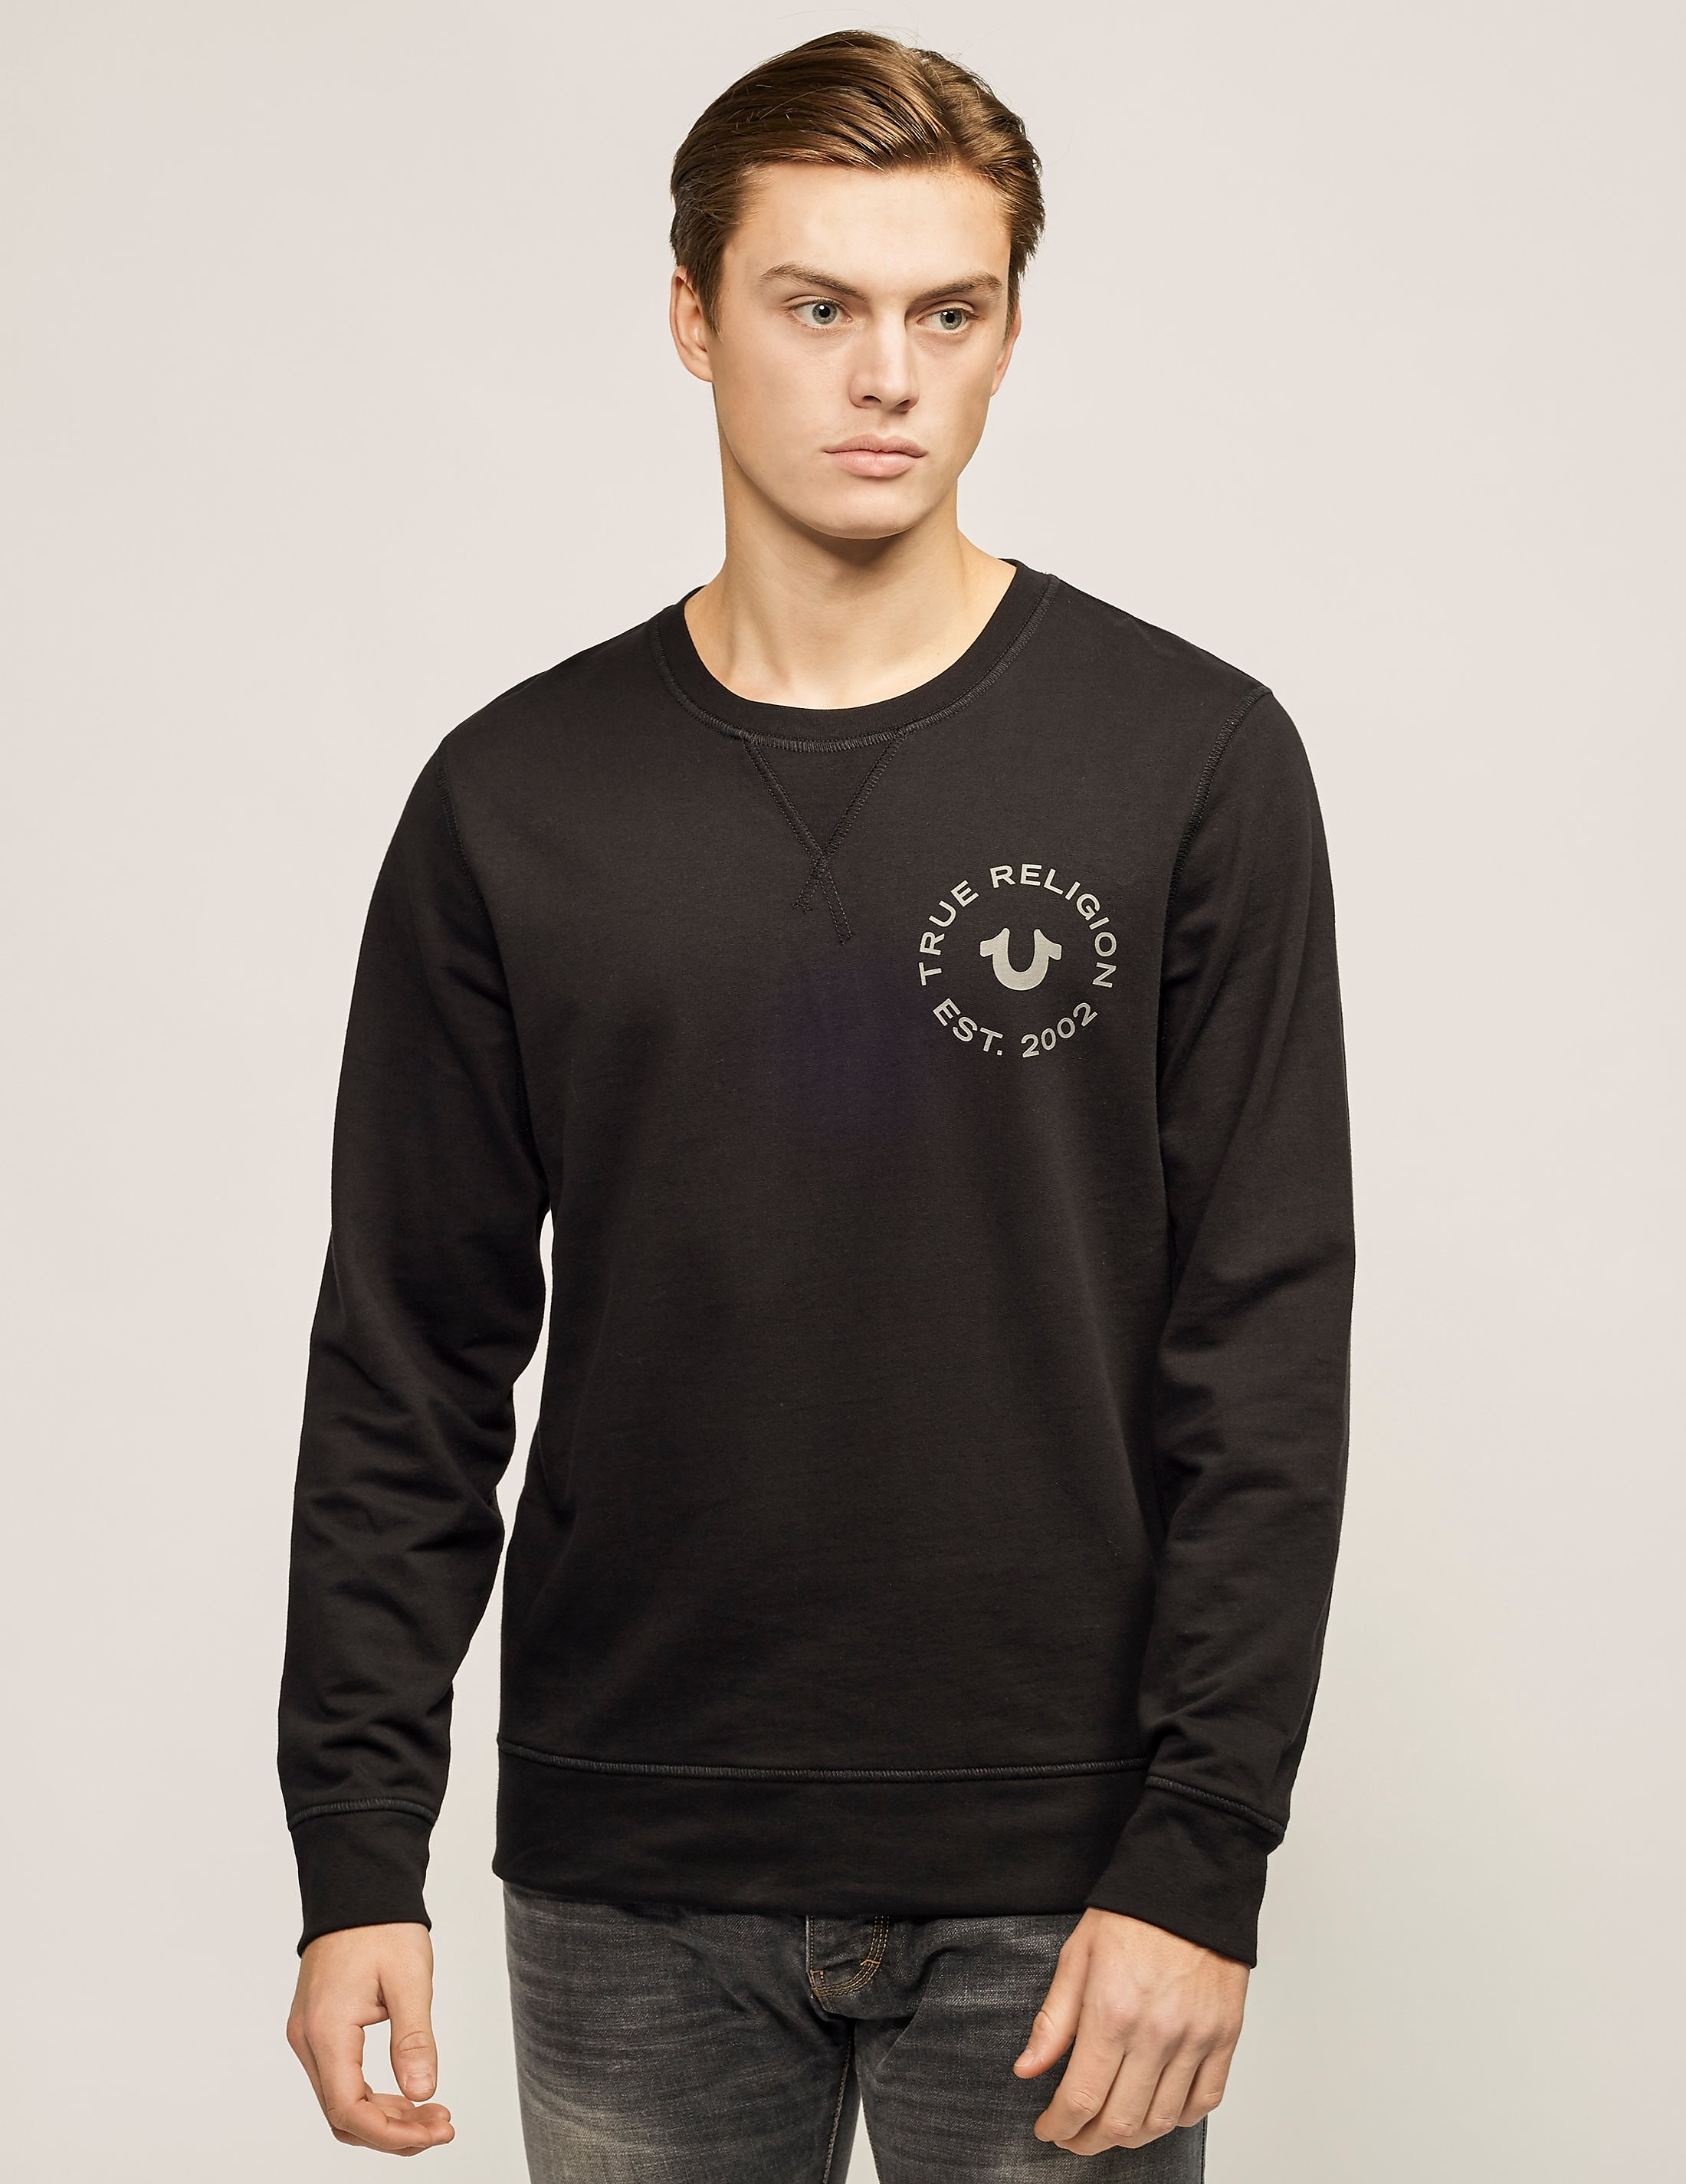 True Religion Crafted Pride Crew Sweatshirt